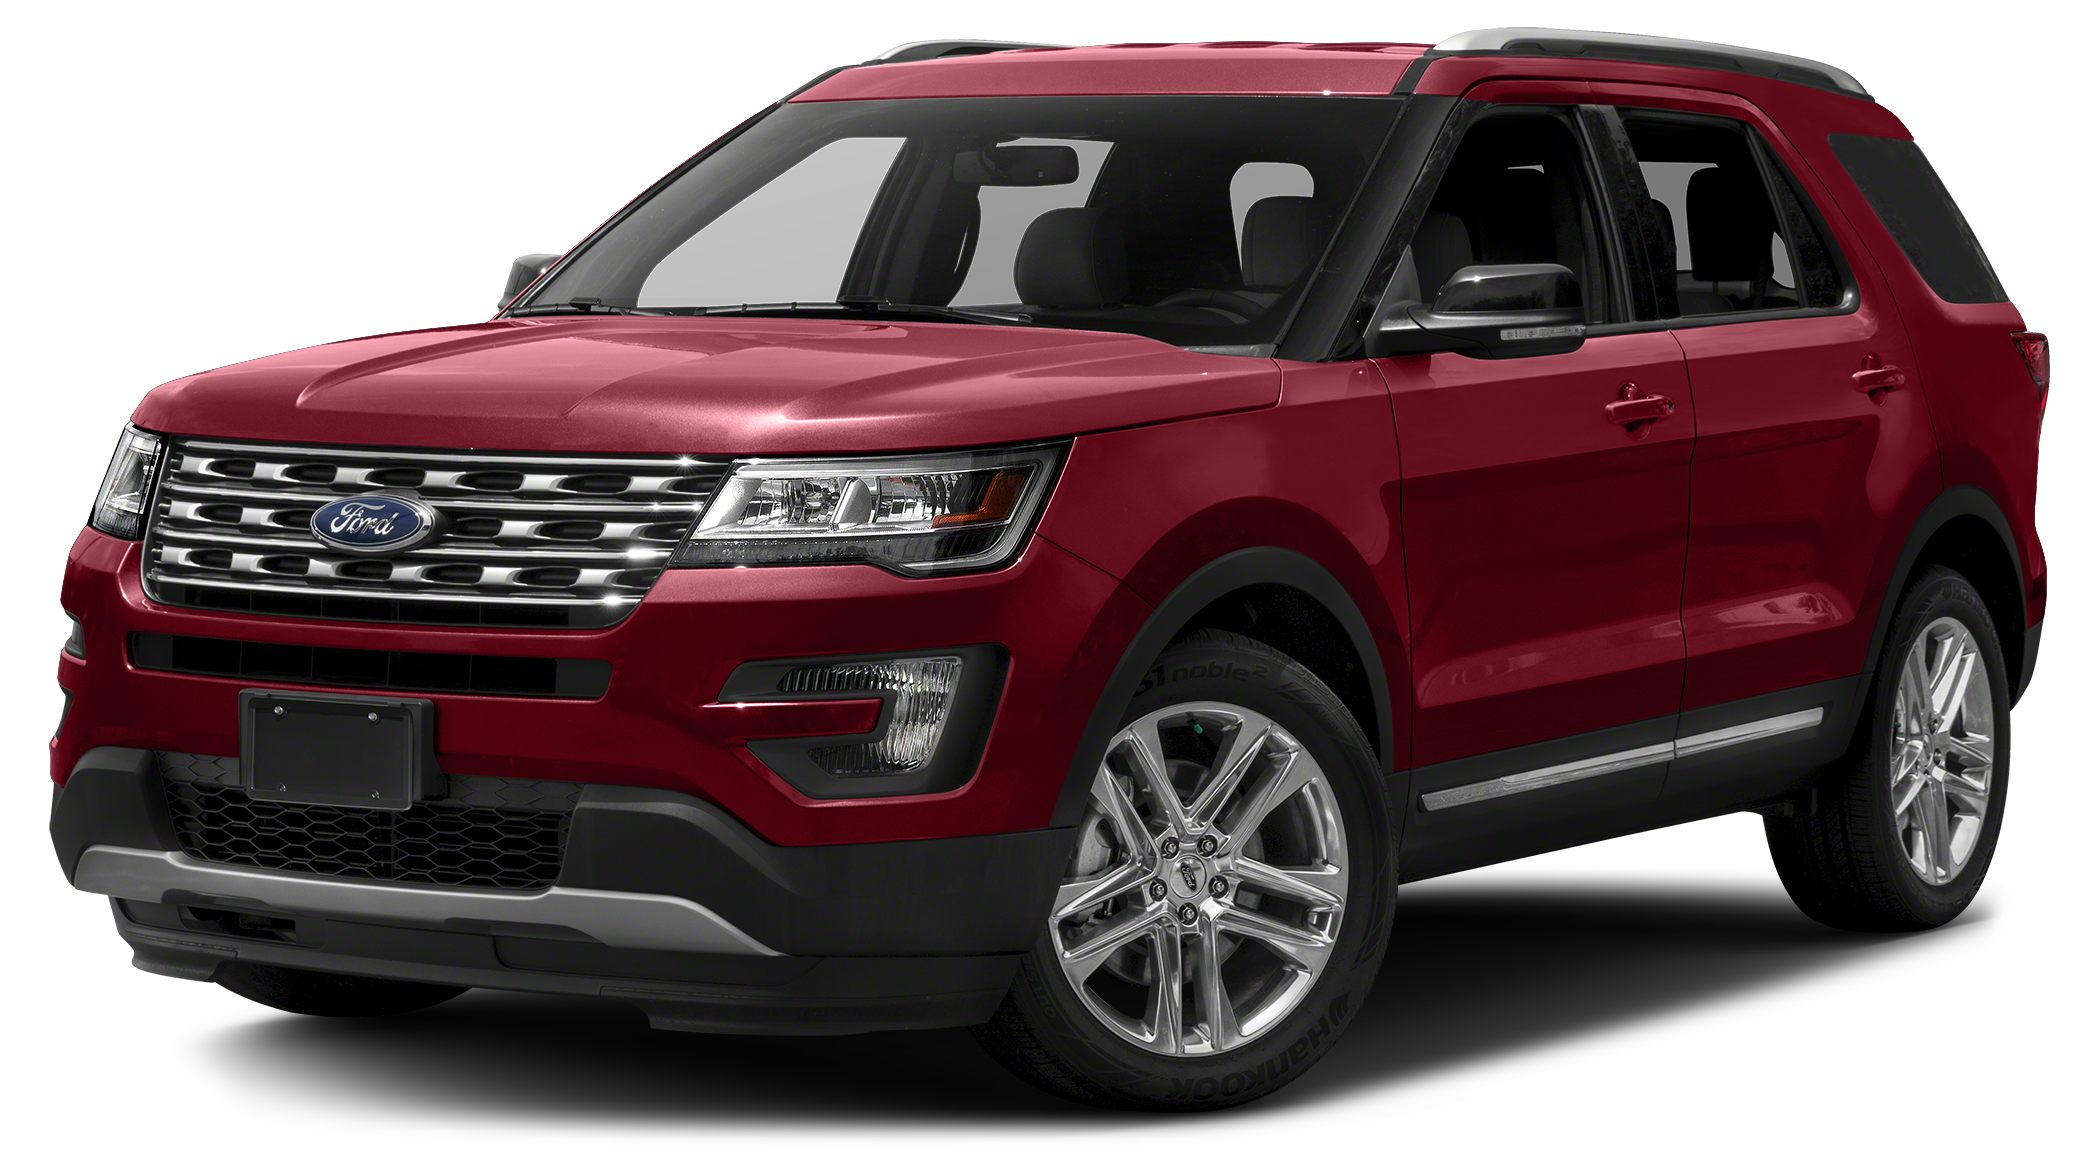 2016 Ford Explorer XLT Cruising in this 2016 Ford Explorer XLT is better than ever with amenities